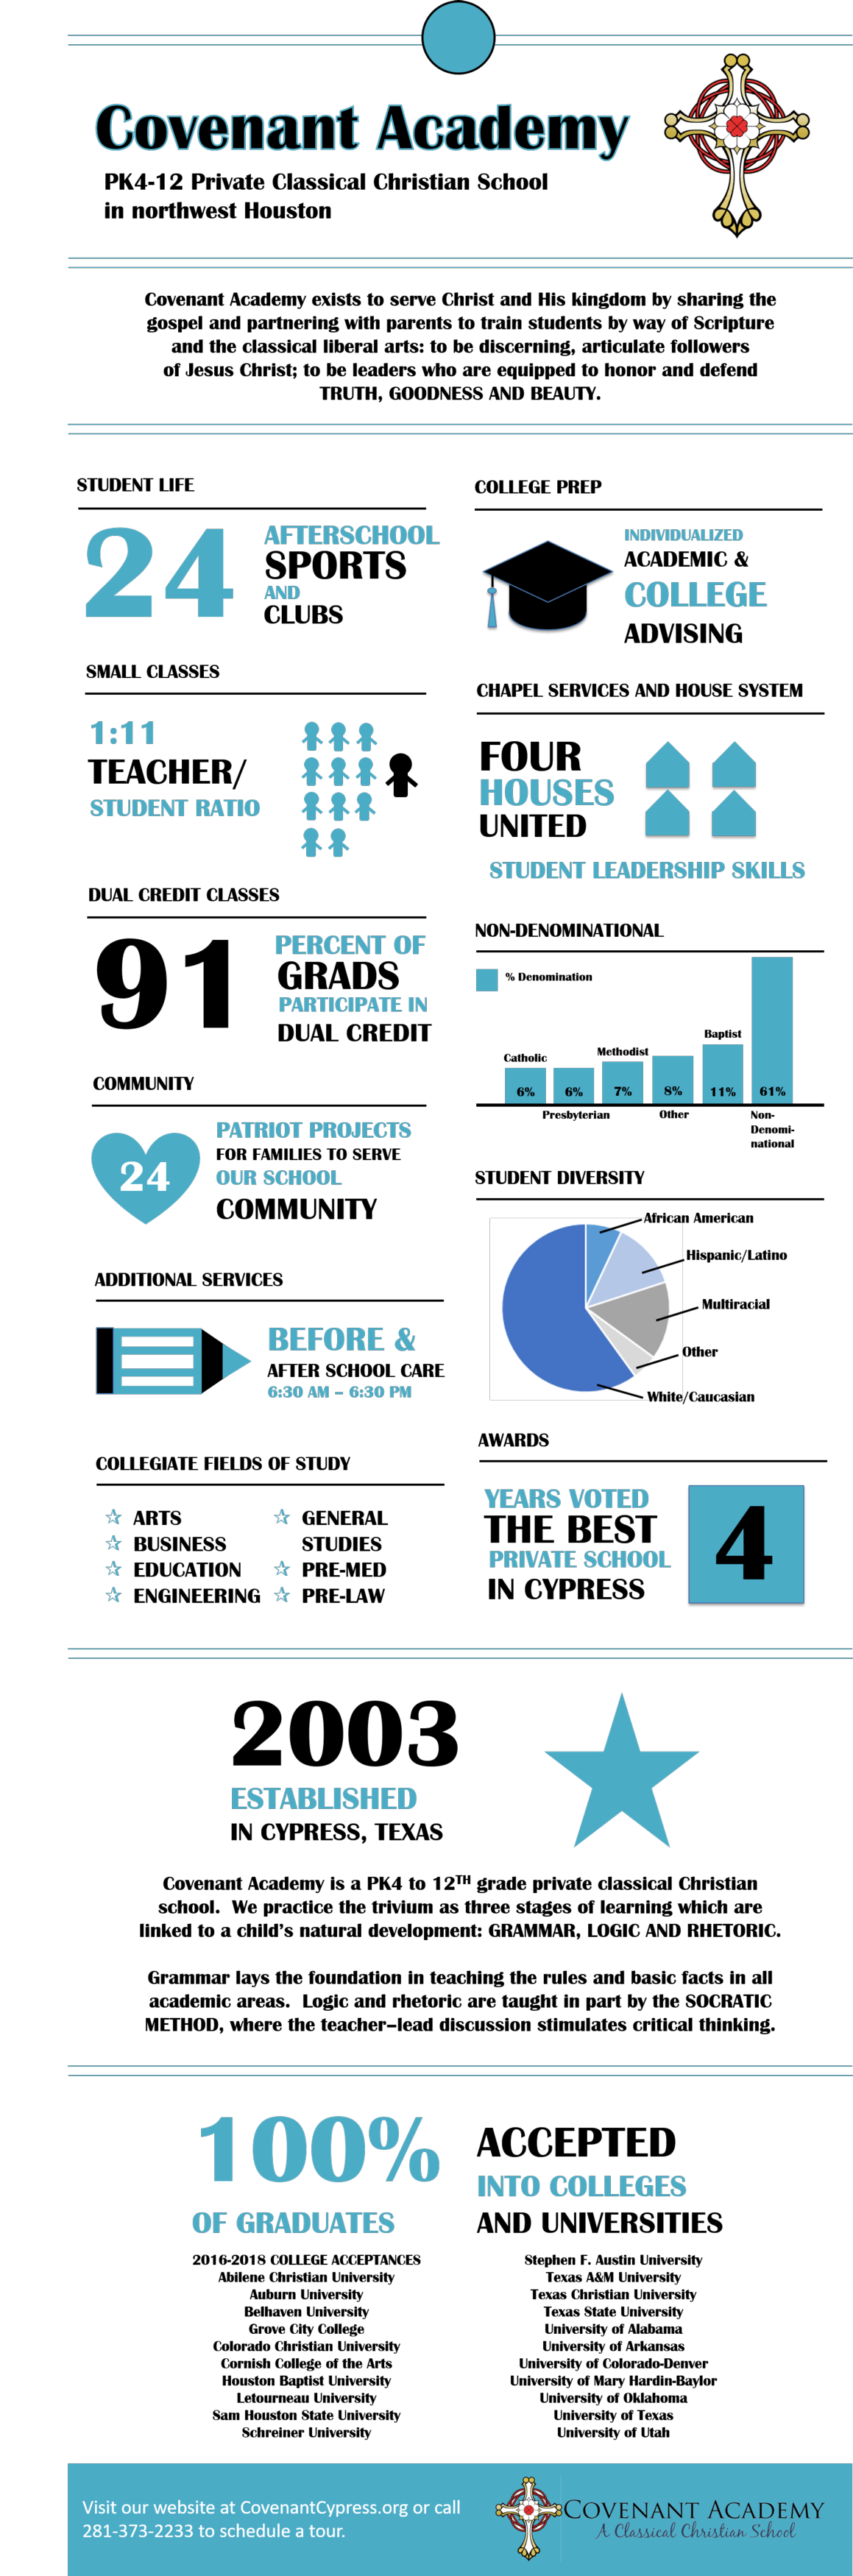 Covenant Academy Infographic